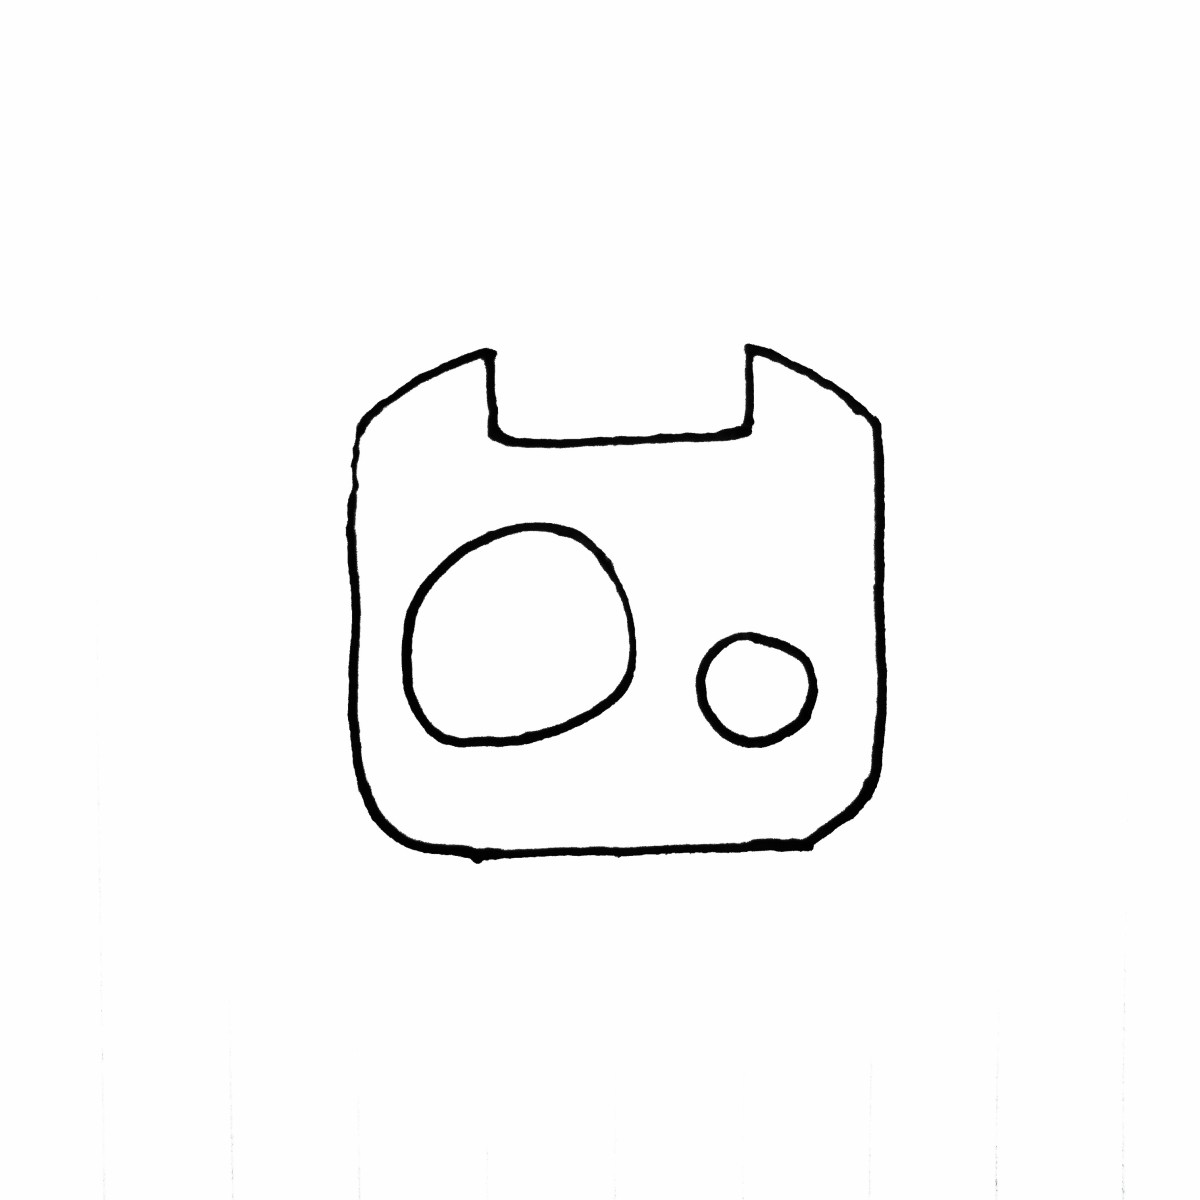 Step 2: Draw the Eyes